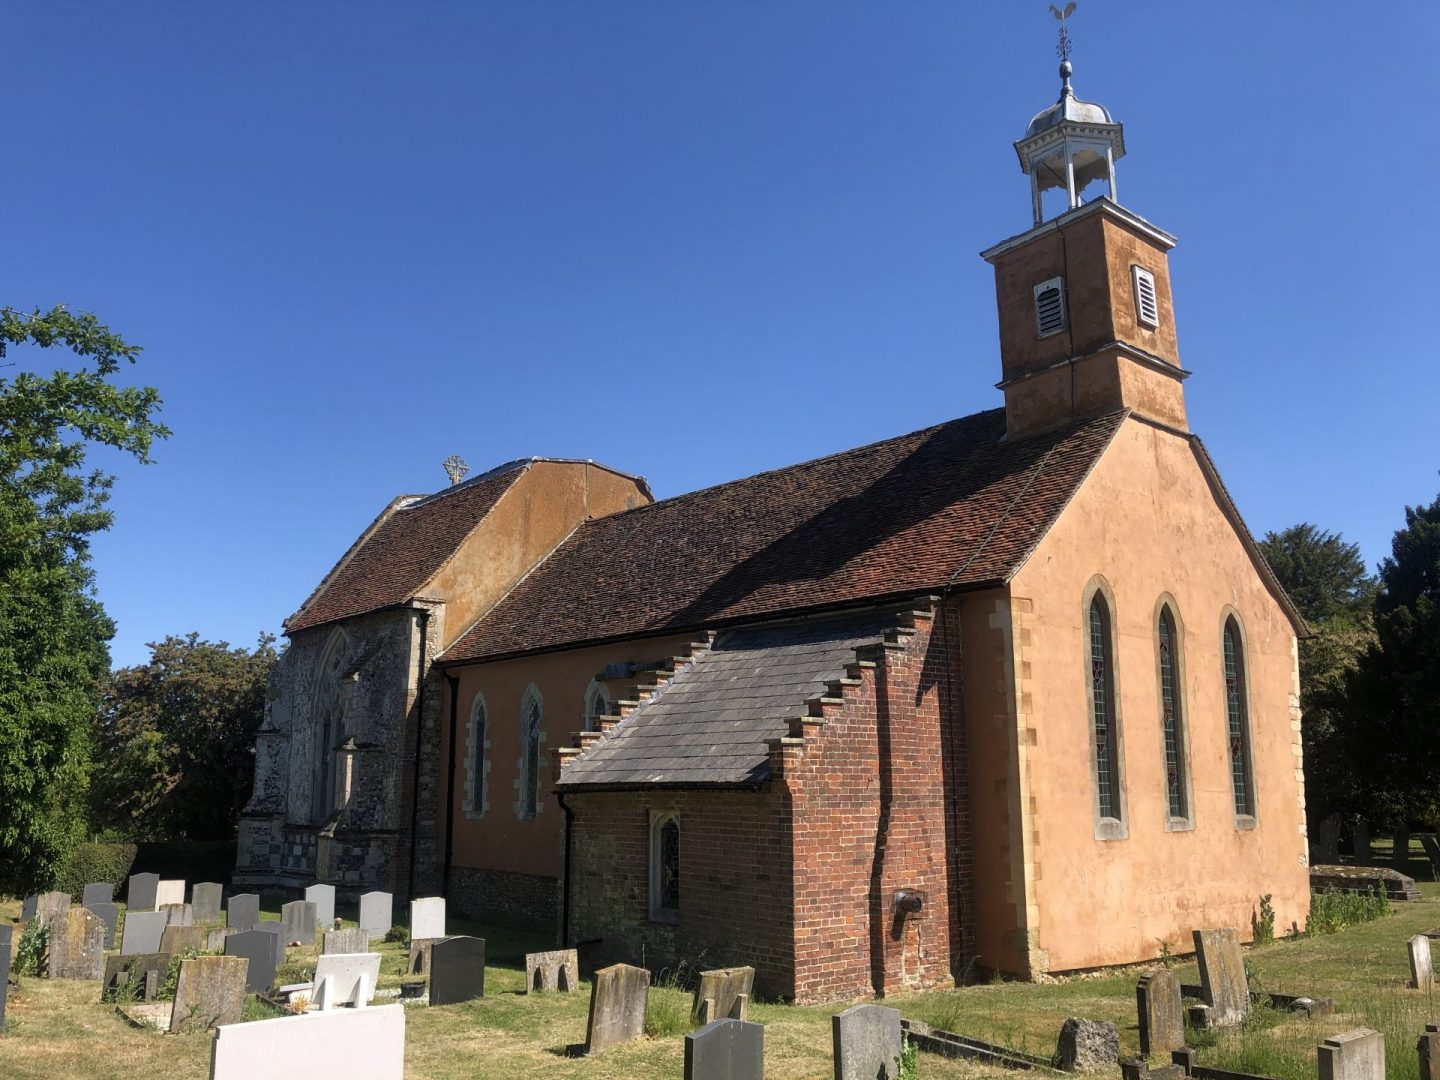 Tilty church viewed from the north west. The thin lancet windows are elegant but much more plain compared to the decorated east end